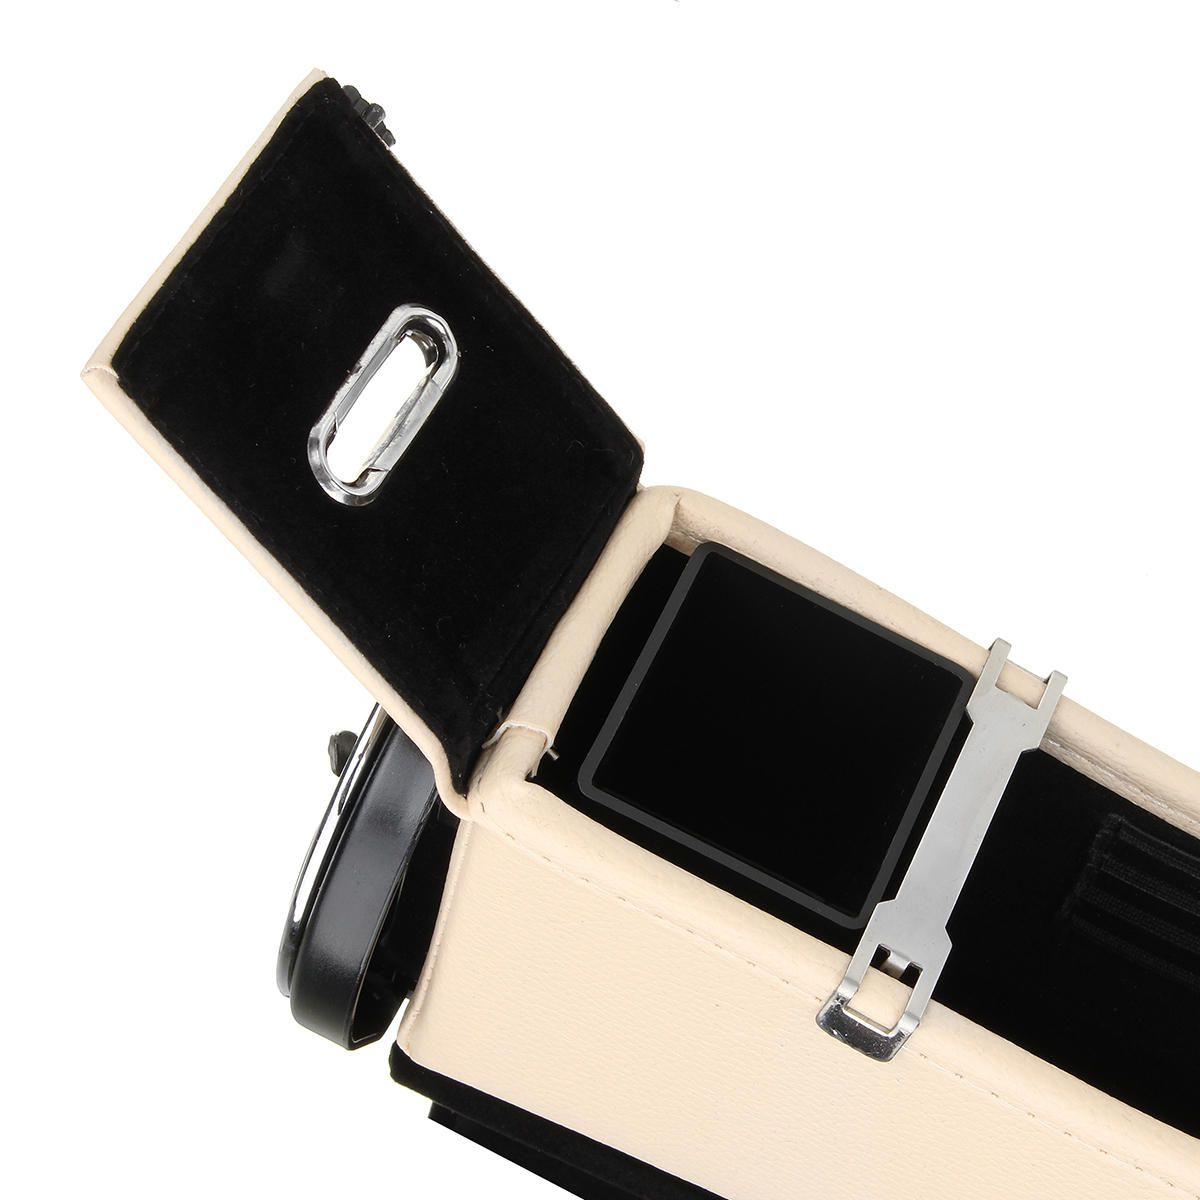 ILL US$33.40 Car Seat Catcher Gap Filler Coin Collector Cup Holder Storage Box Dual USB Charging Port